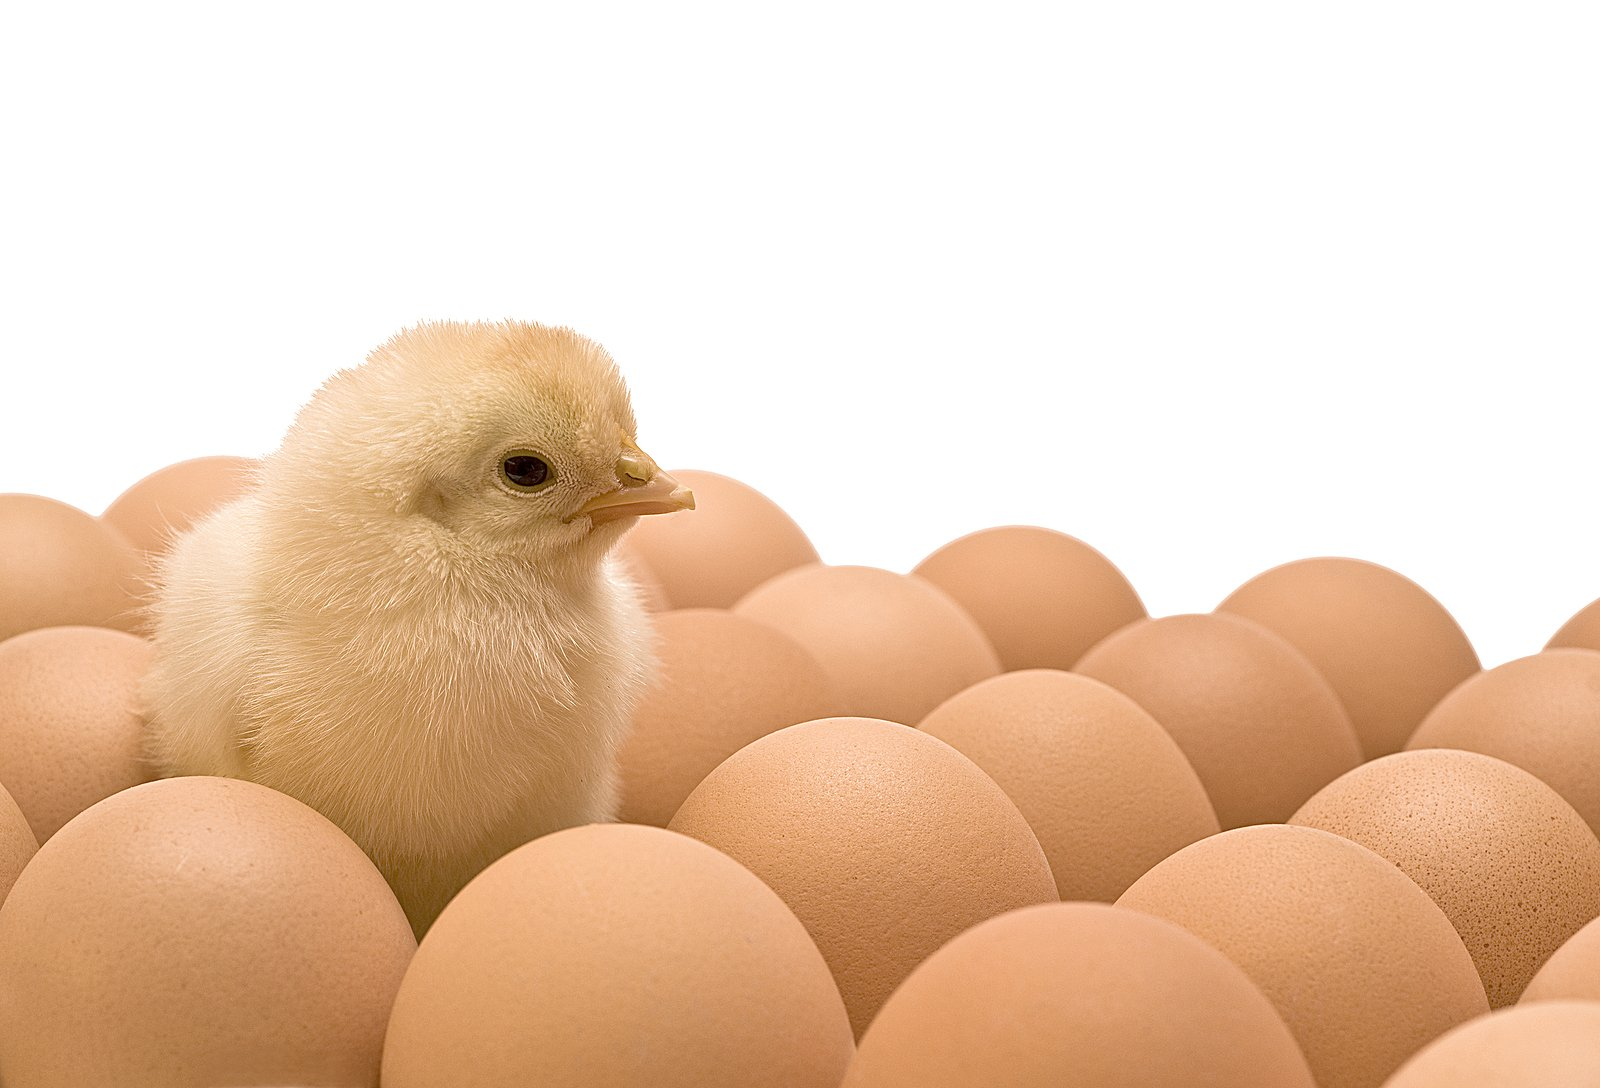 Movie Theaters Chicken or the Egg